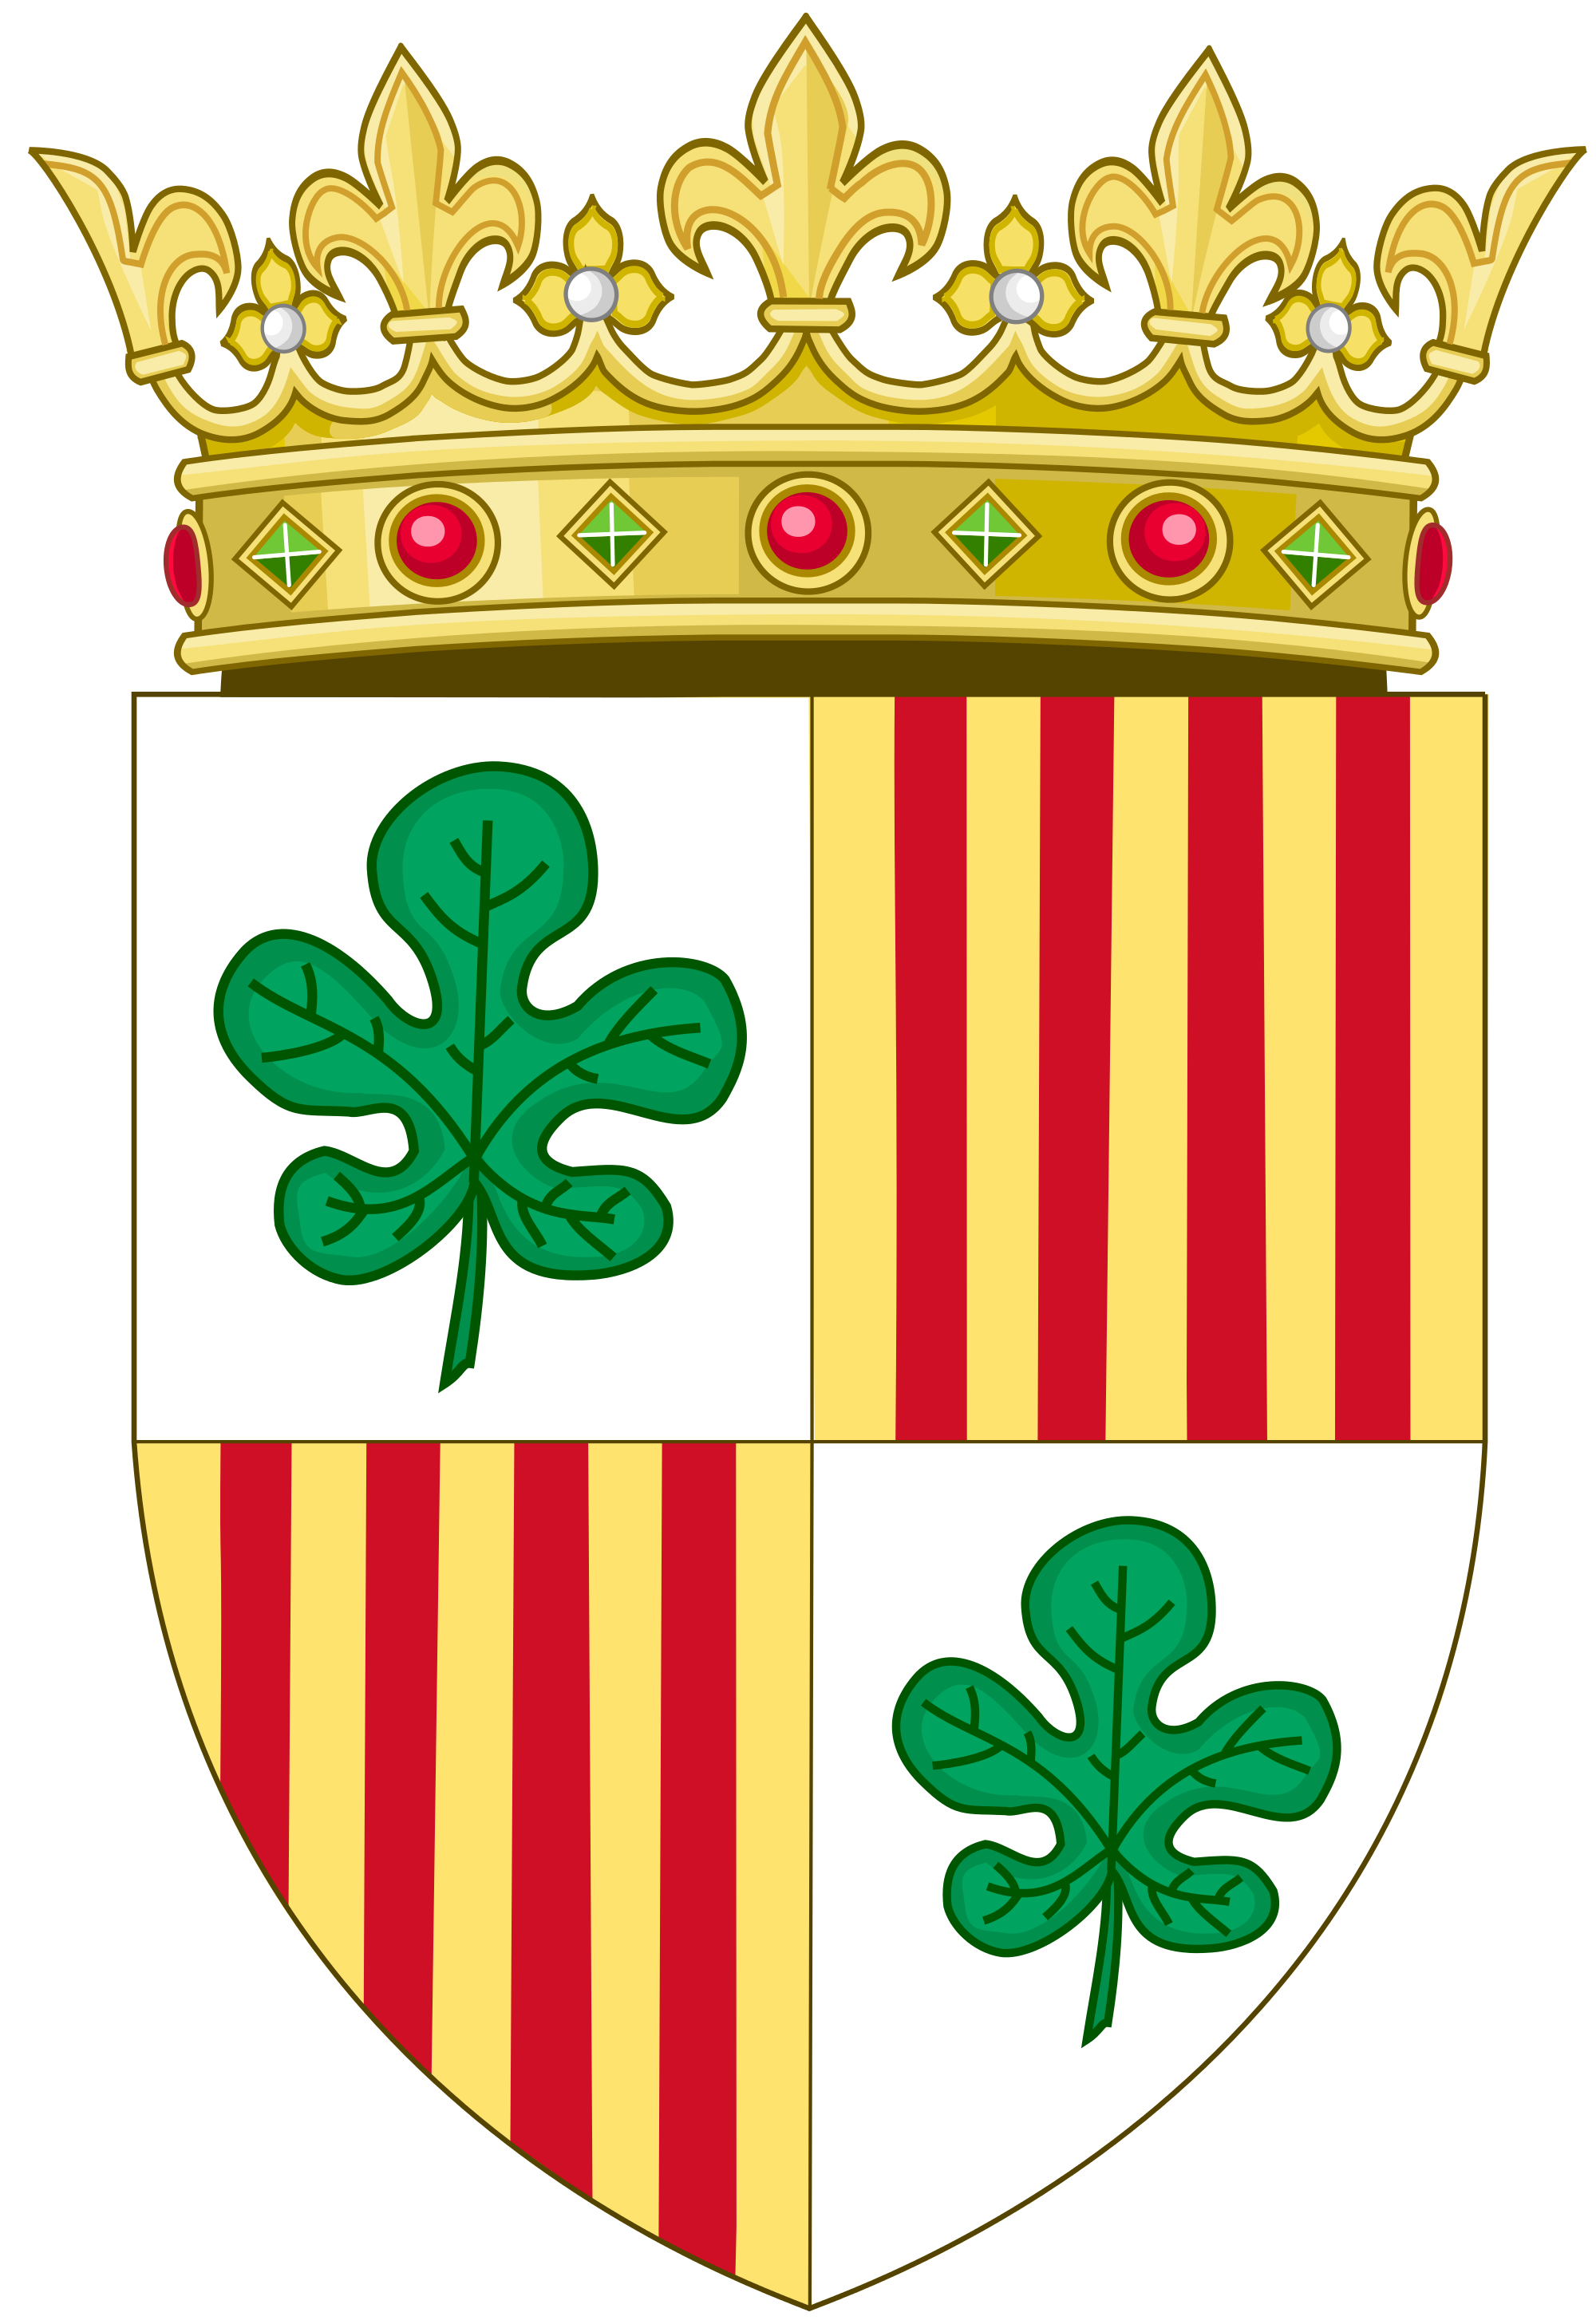 File:Coat of Arms of Figueres.svg.